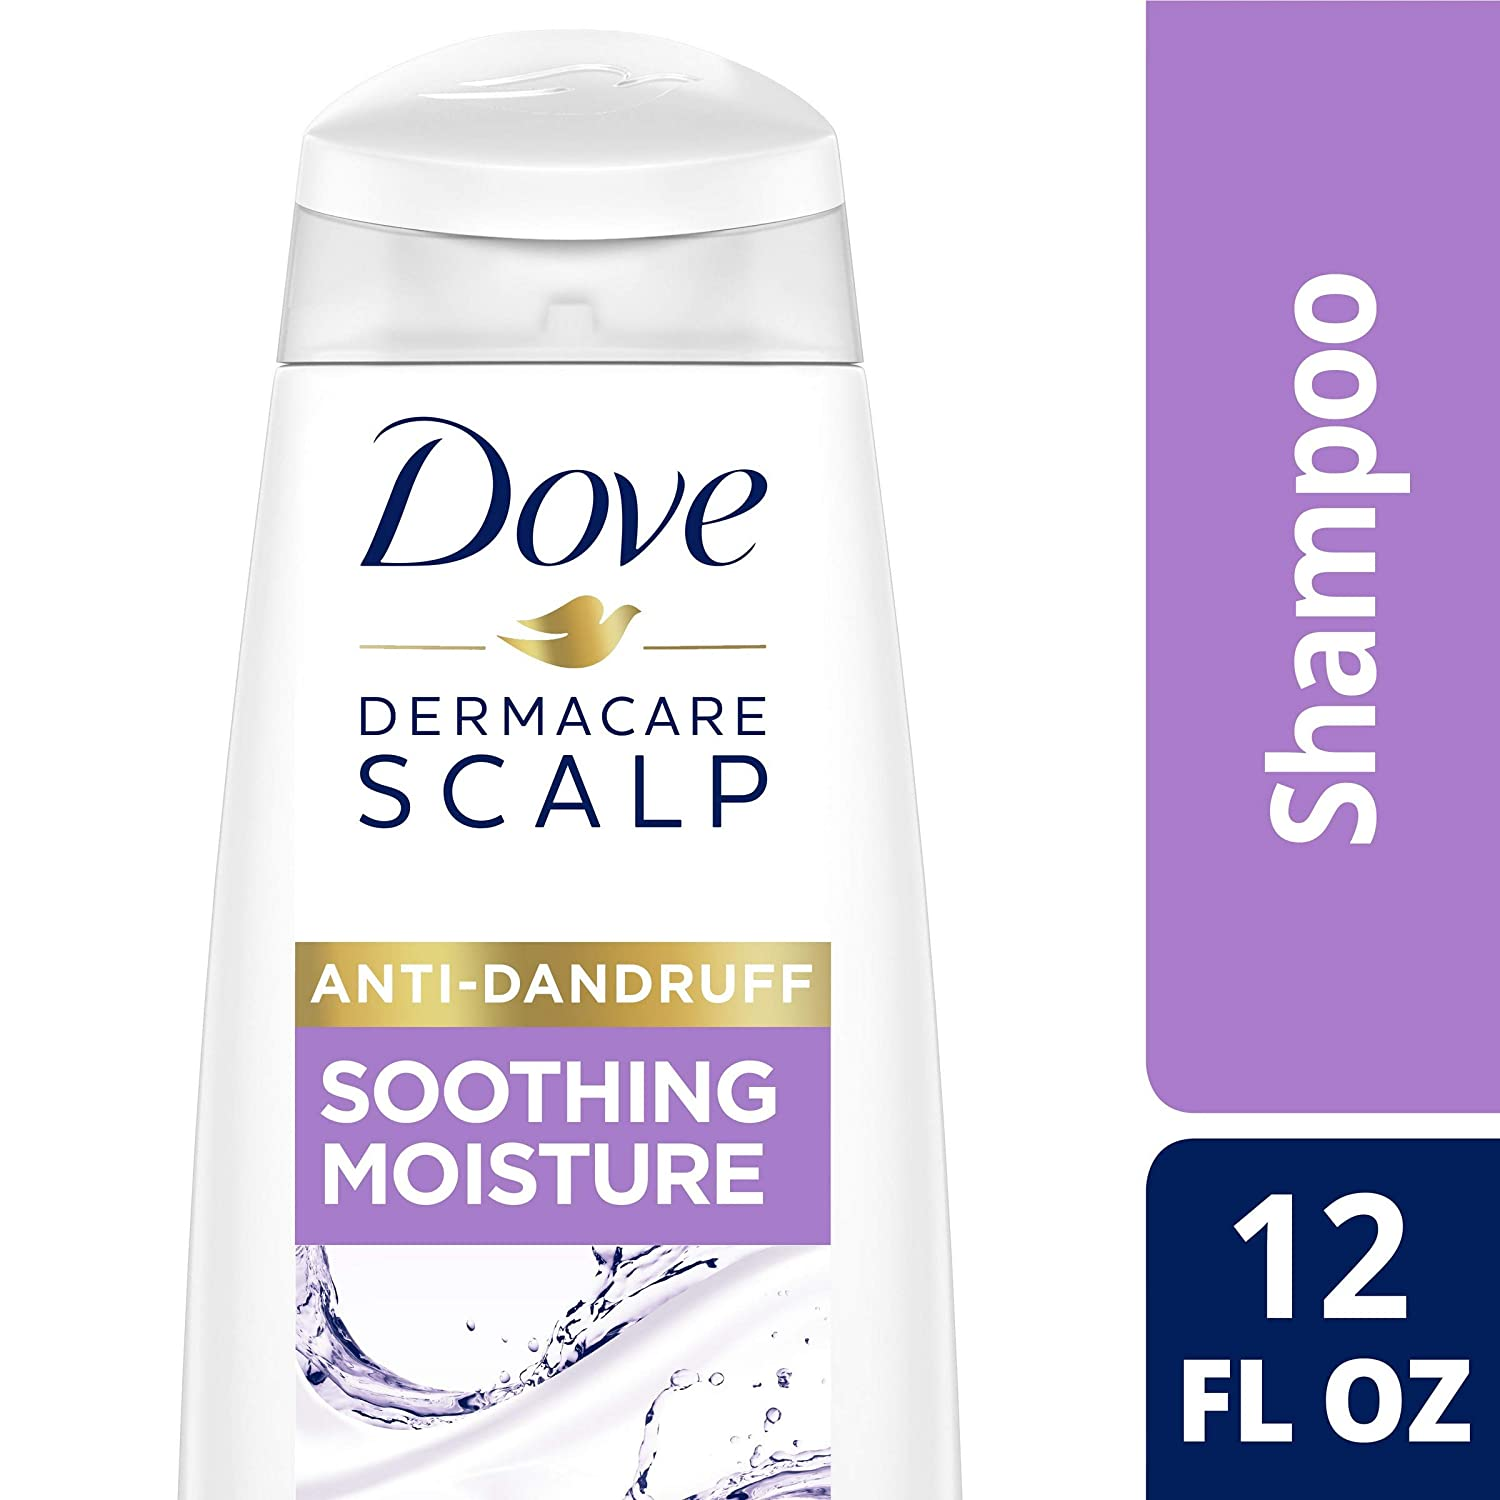 DOVE HAIR Dermacare Scalp Soothing Moisture Anti-Dandruff Shampoo, 12 Ounce (Pack Of 6)